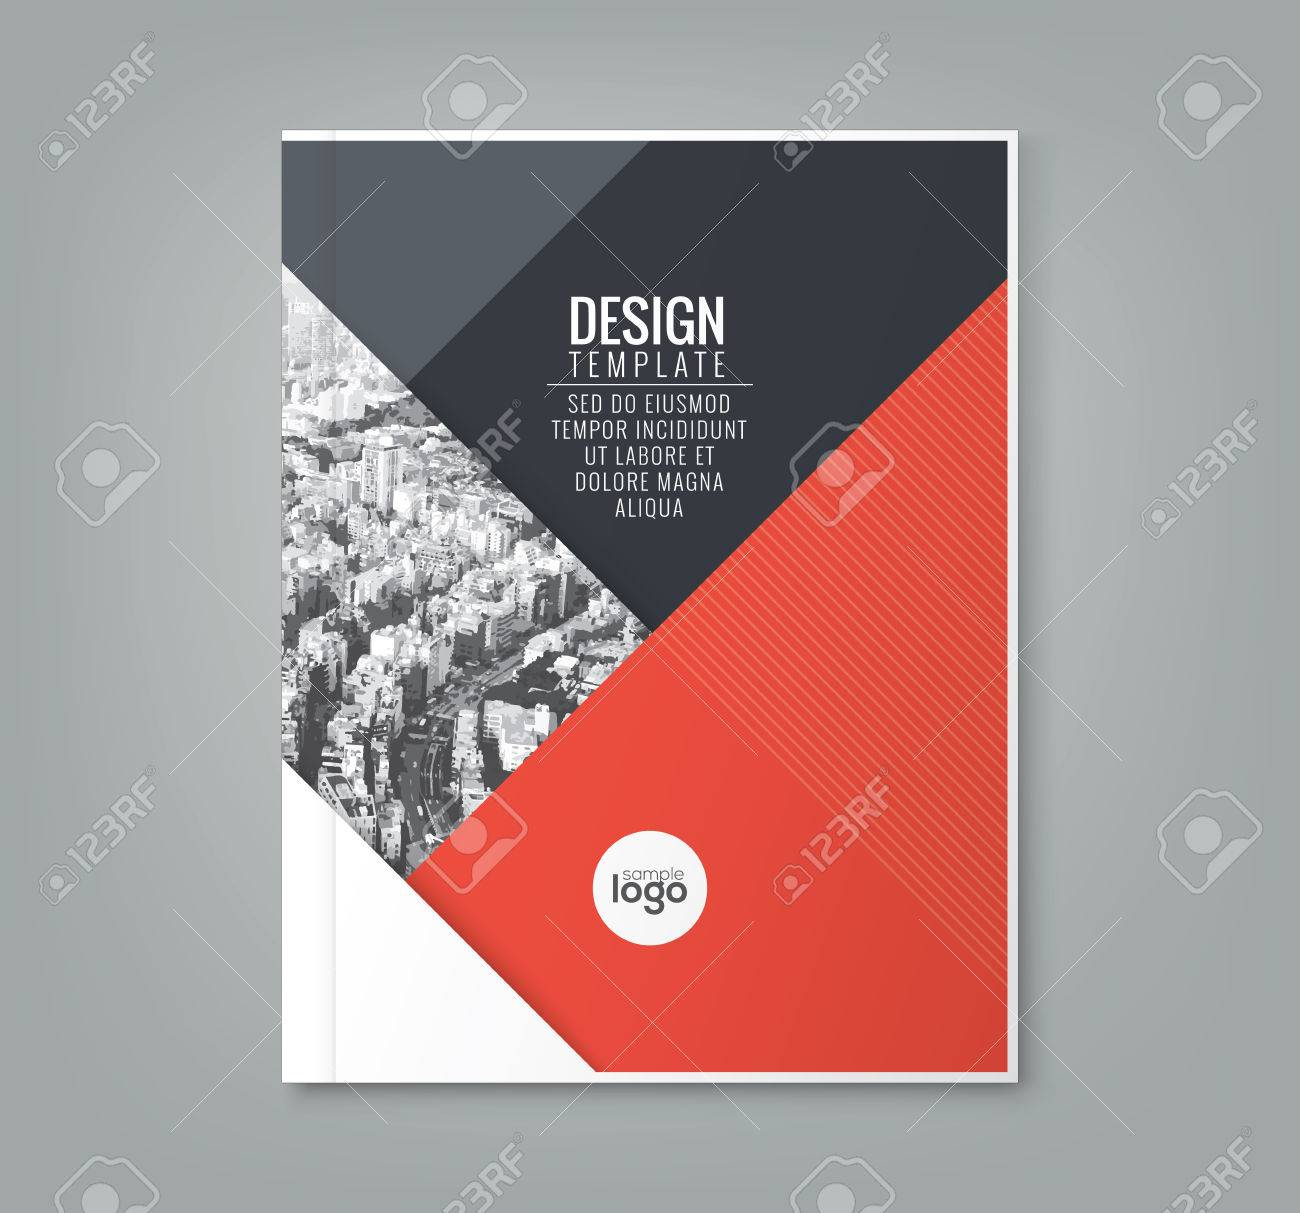 minimal simple red color design template background for business annual report book cover brochure poster - 56089098